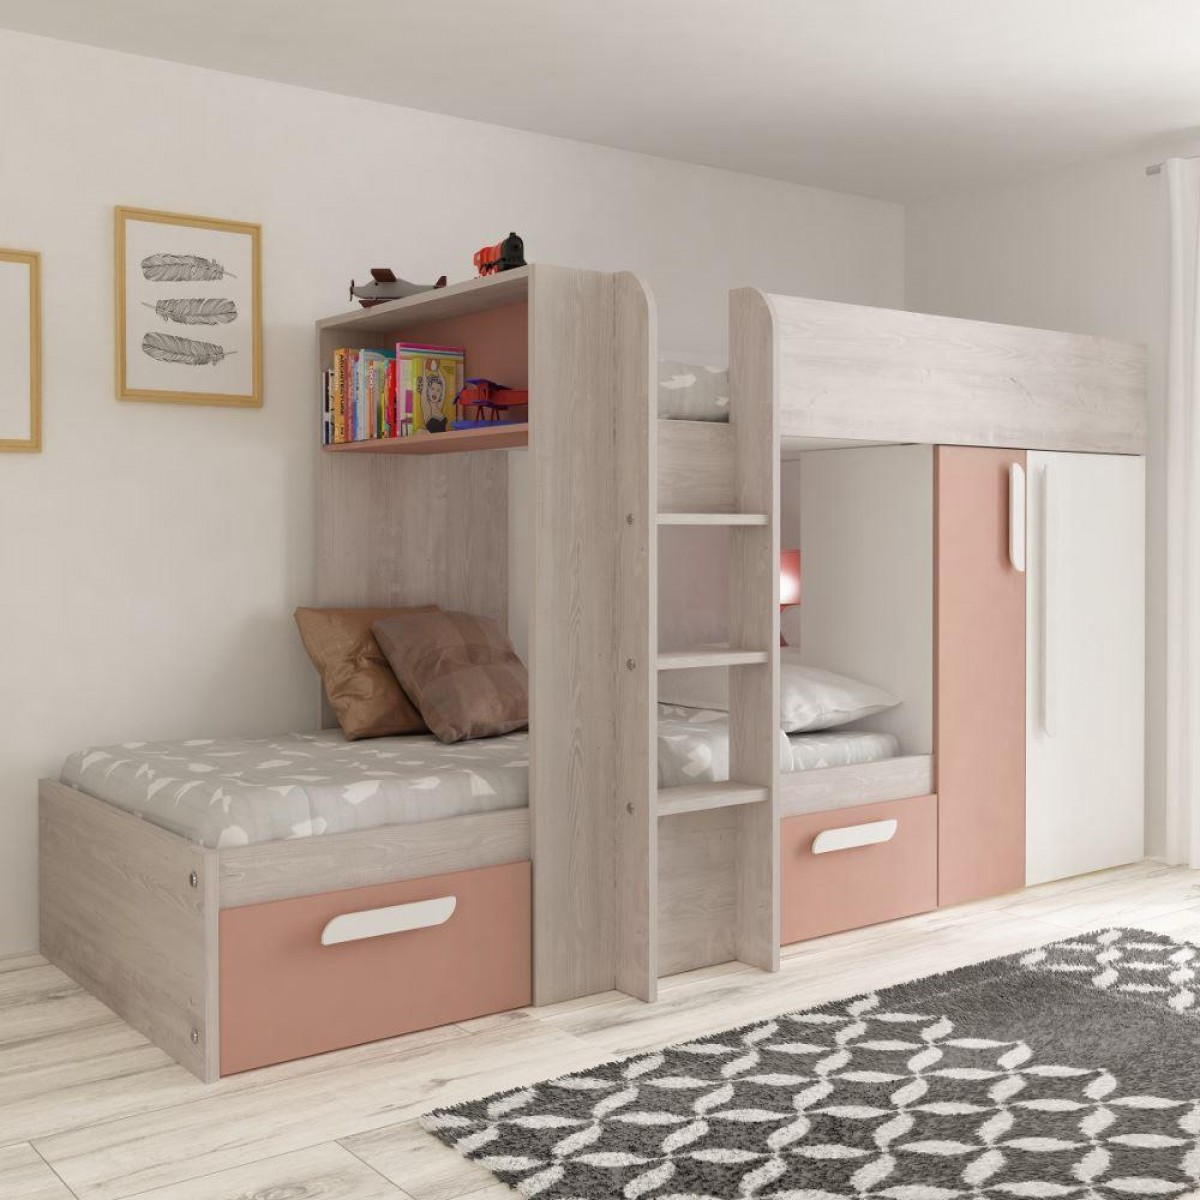 Barca Pink and Oak Wooden Bunk Bed